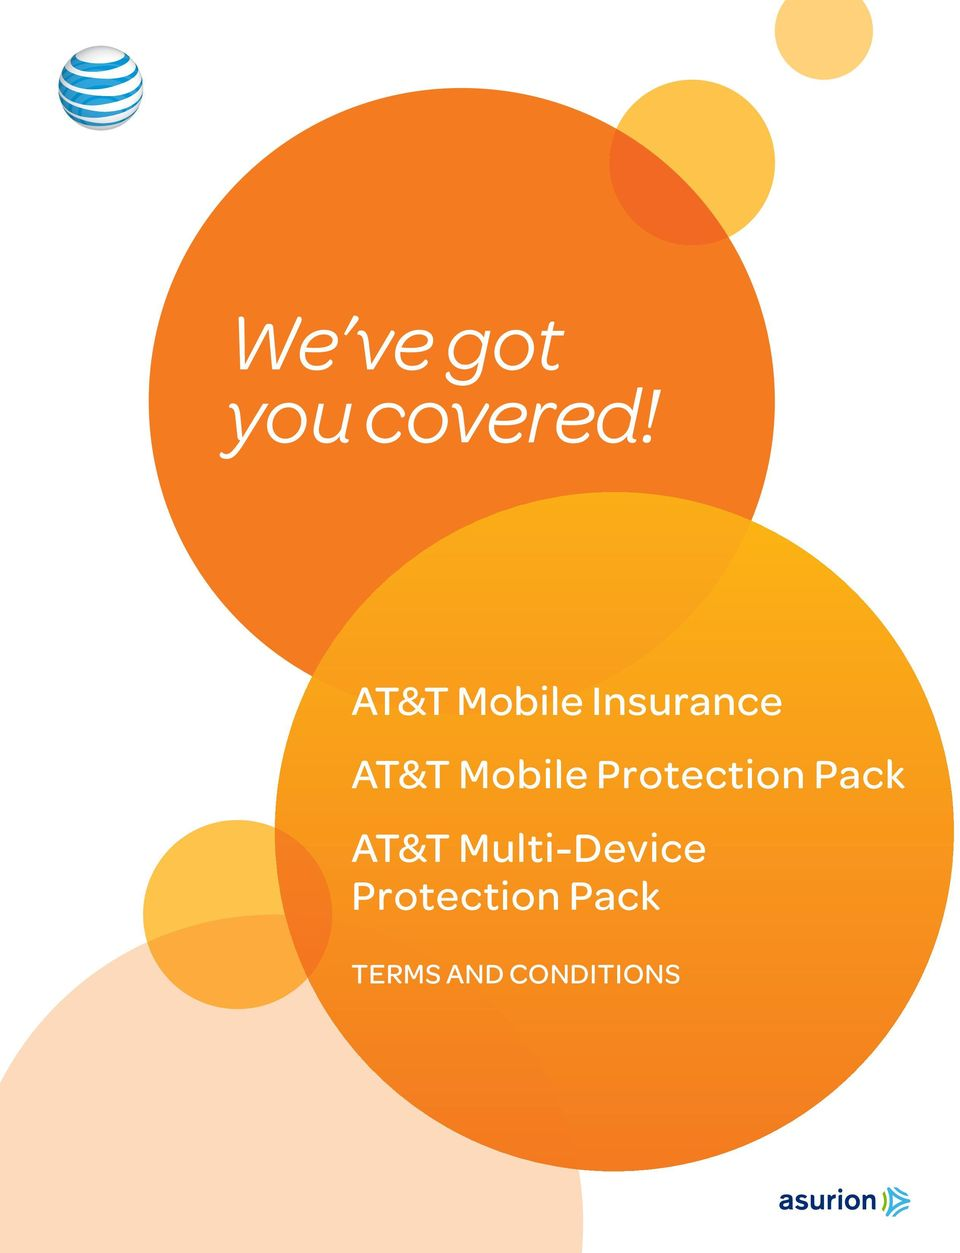 Mobile Protection Pack AT&T